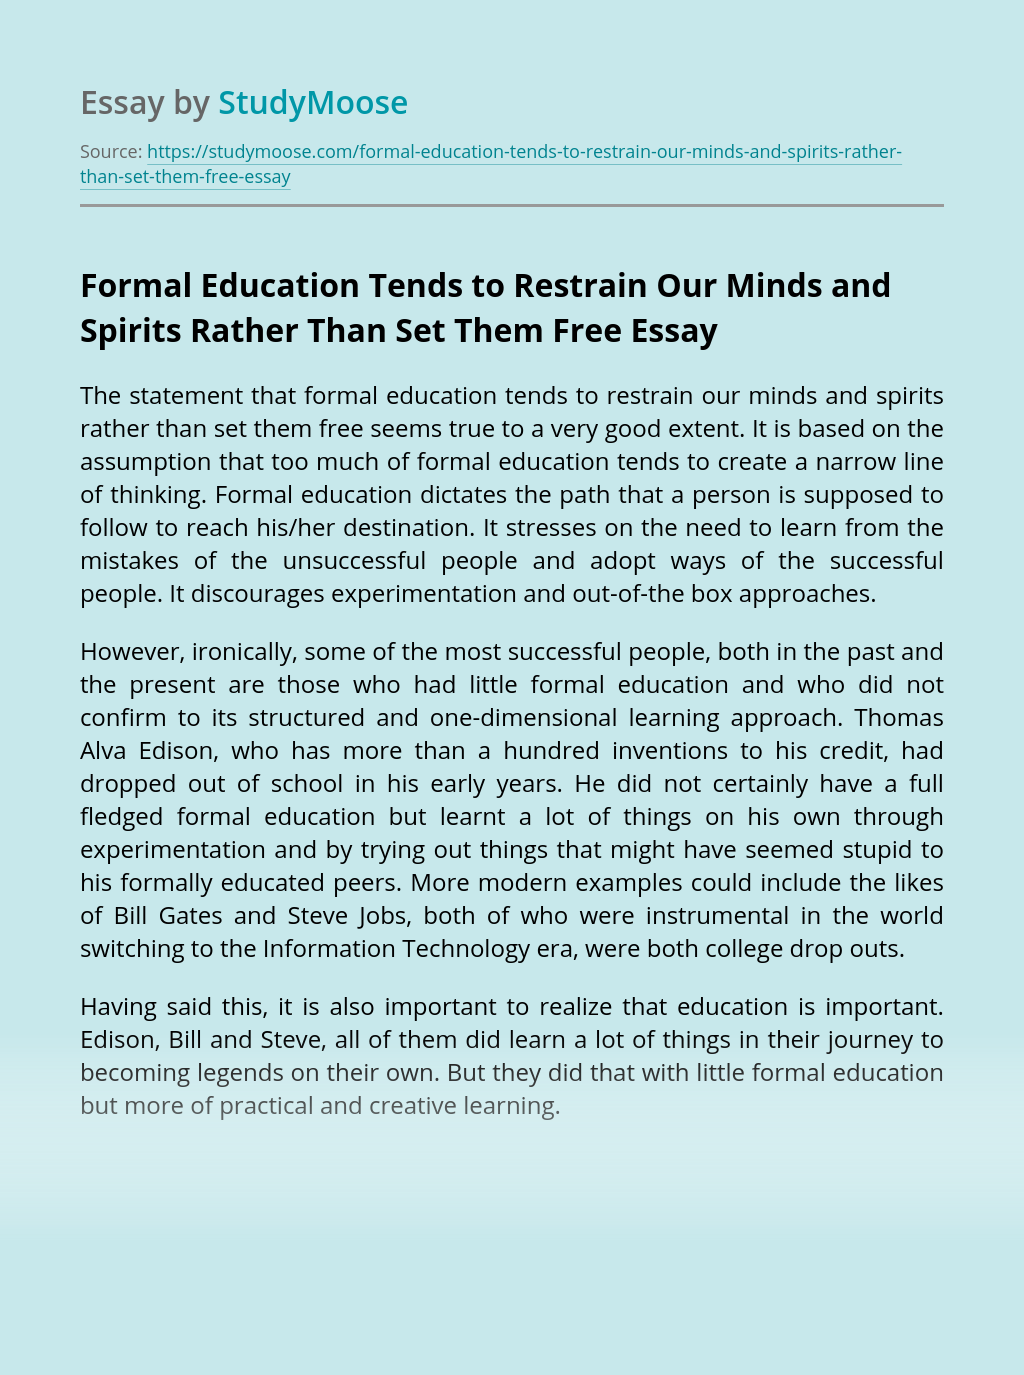 Formal Education Tends to Restrain Our Minds and Spirits Rather Than Set Them Free